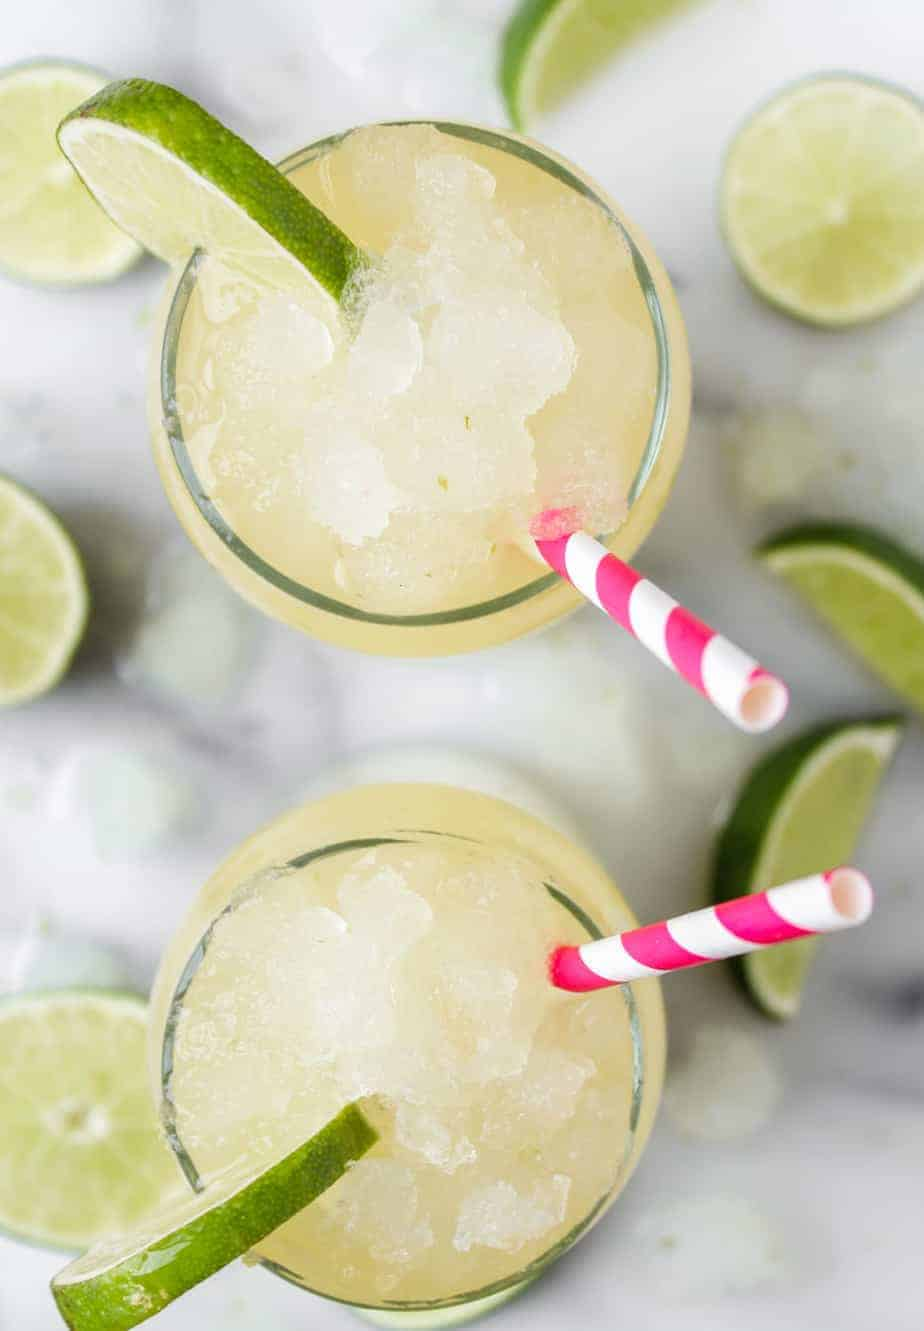 corona cocktail with limes and corona extra beer and pink striped straws